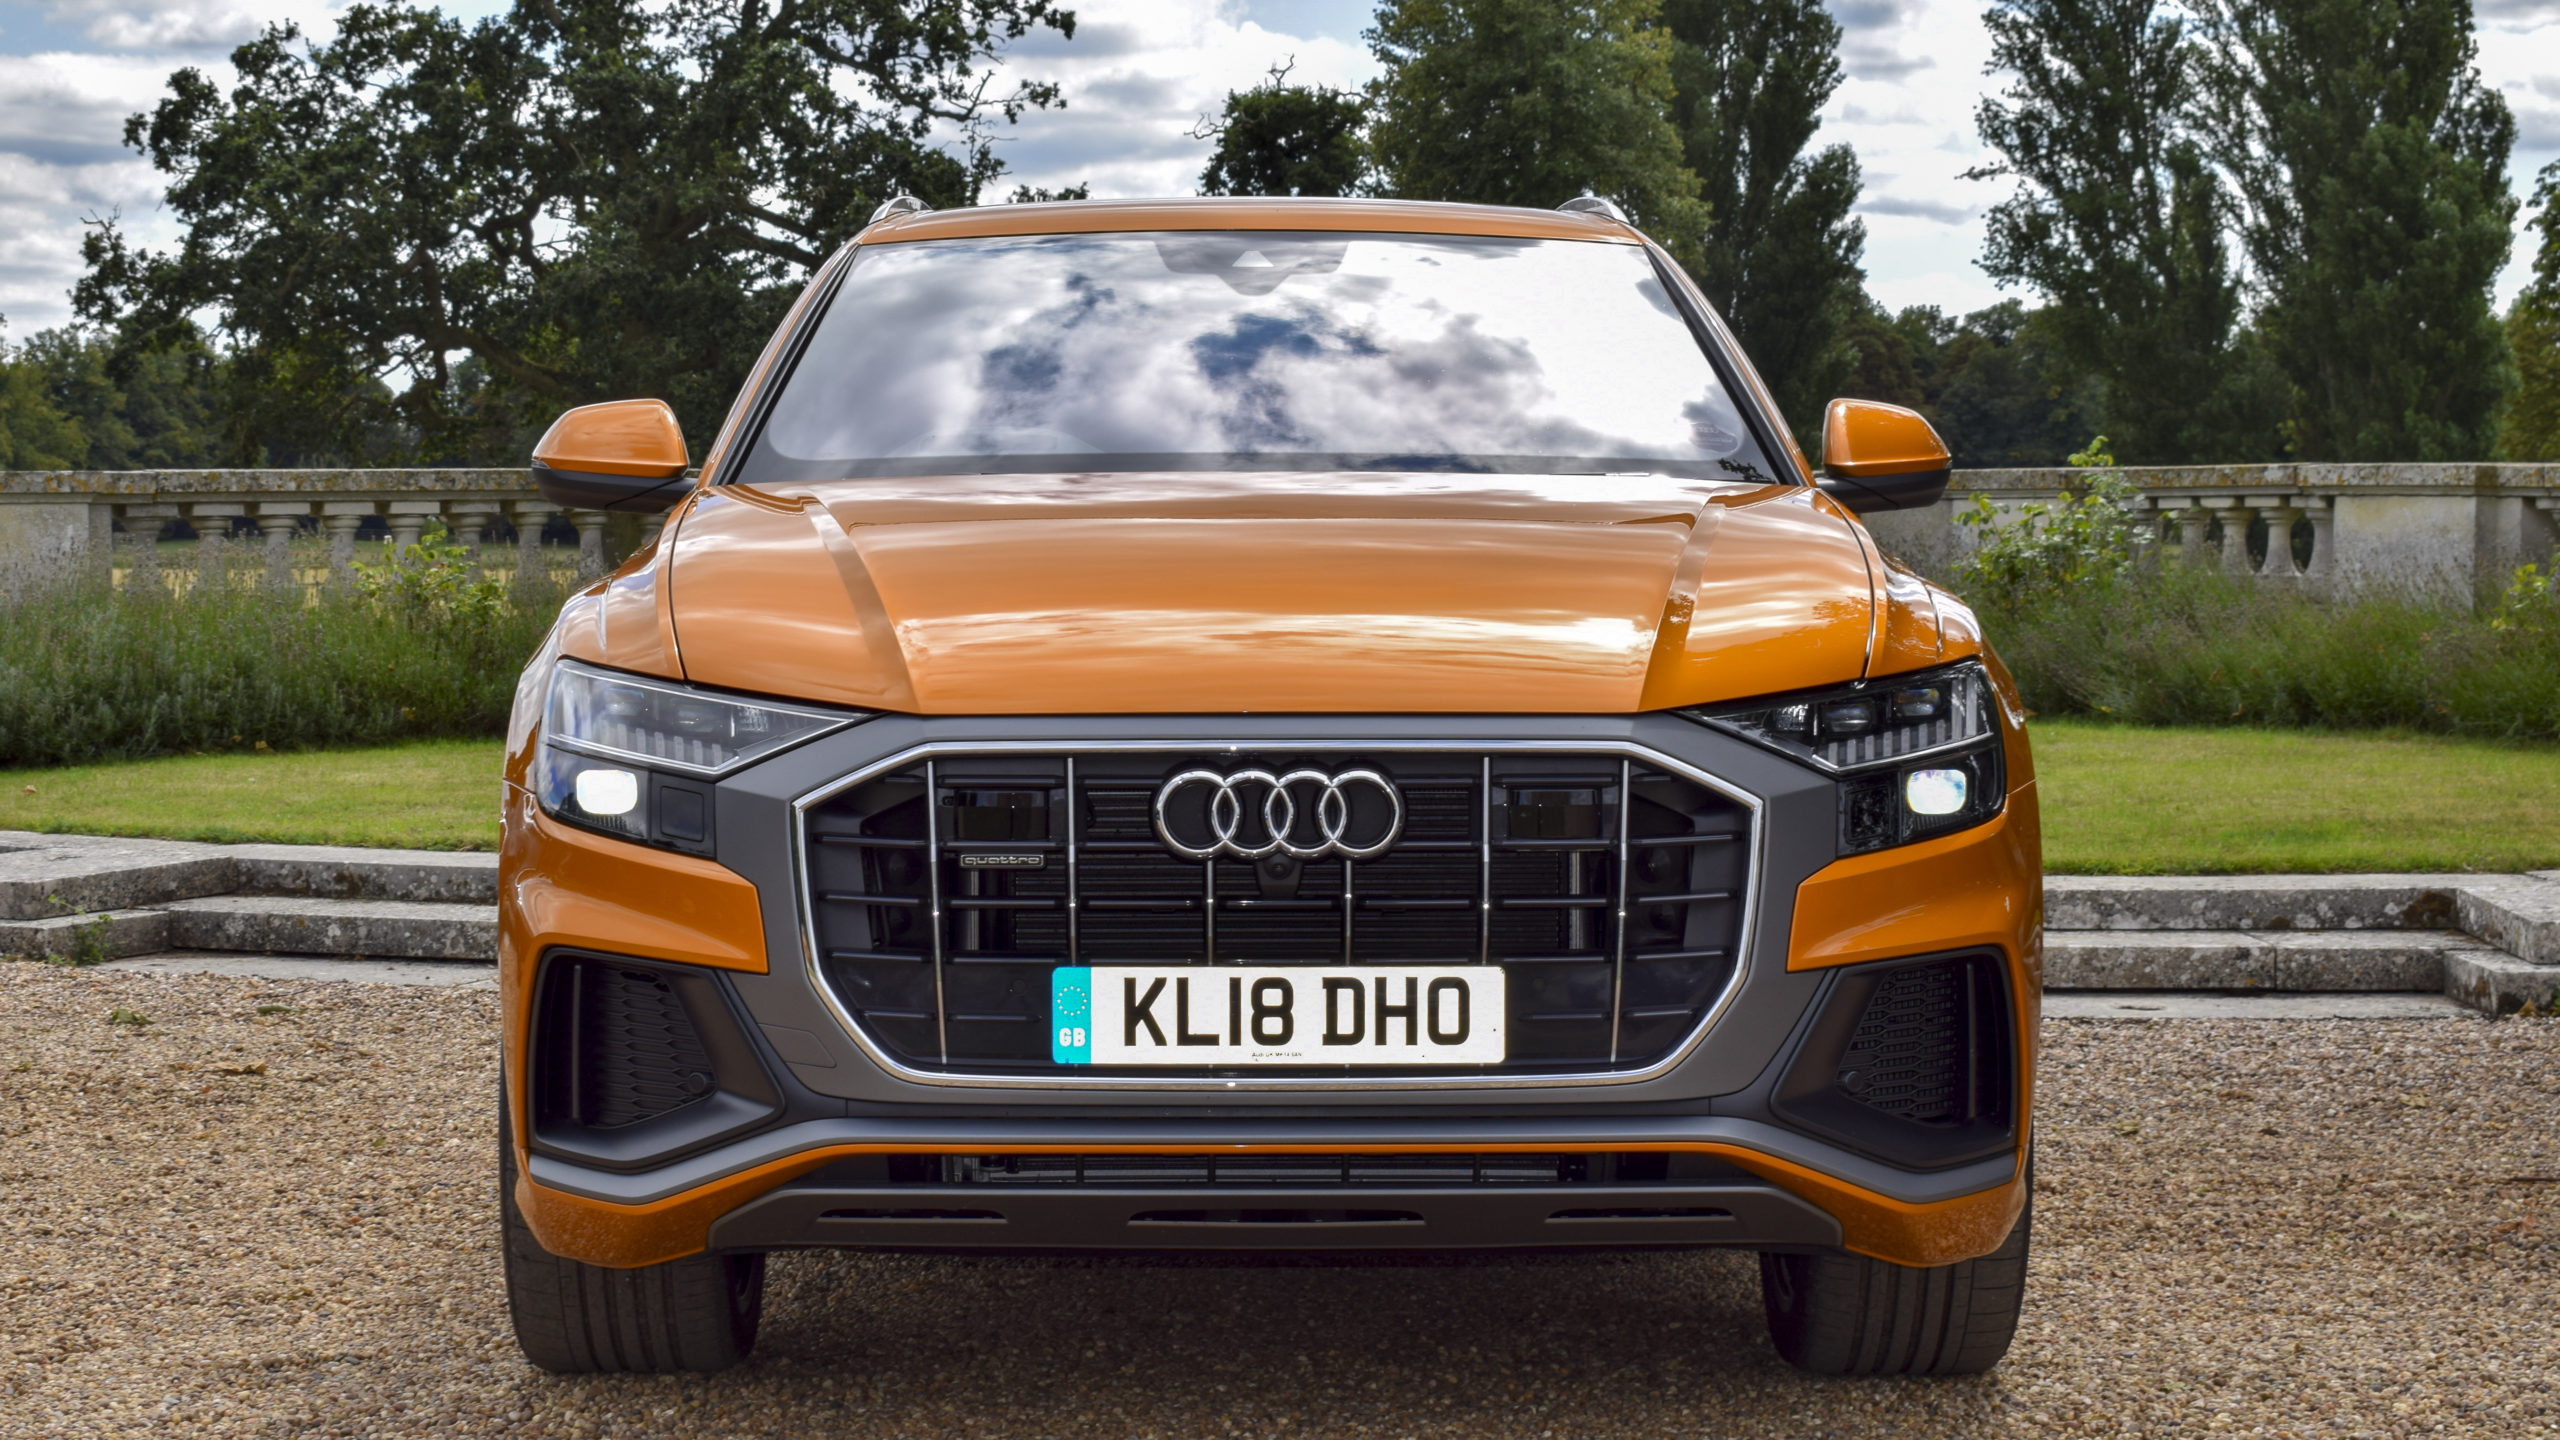 New Audi Q8 2018 Suv Uk Price And Review We Take Audi S Tech Filled Flagship Suv For A Drive